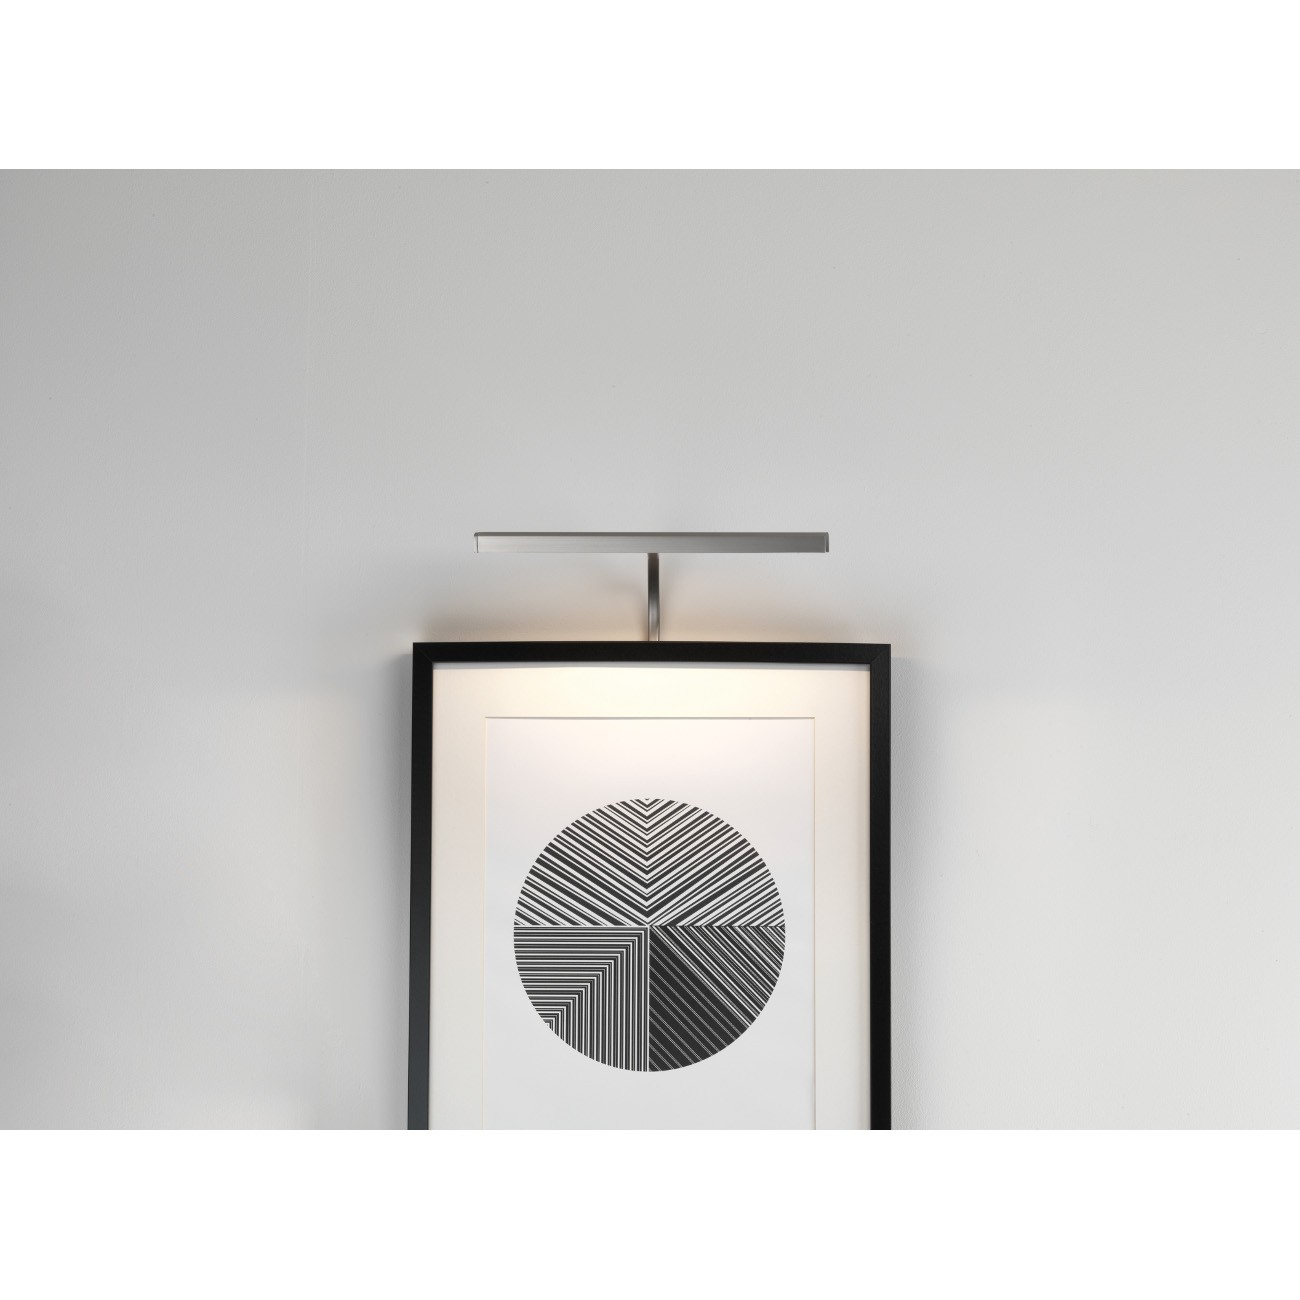 Bilderleuchten MONDRIAN 300 FRAME MOUNTED LED Nickel matt